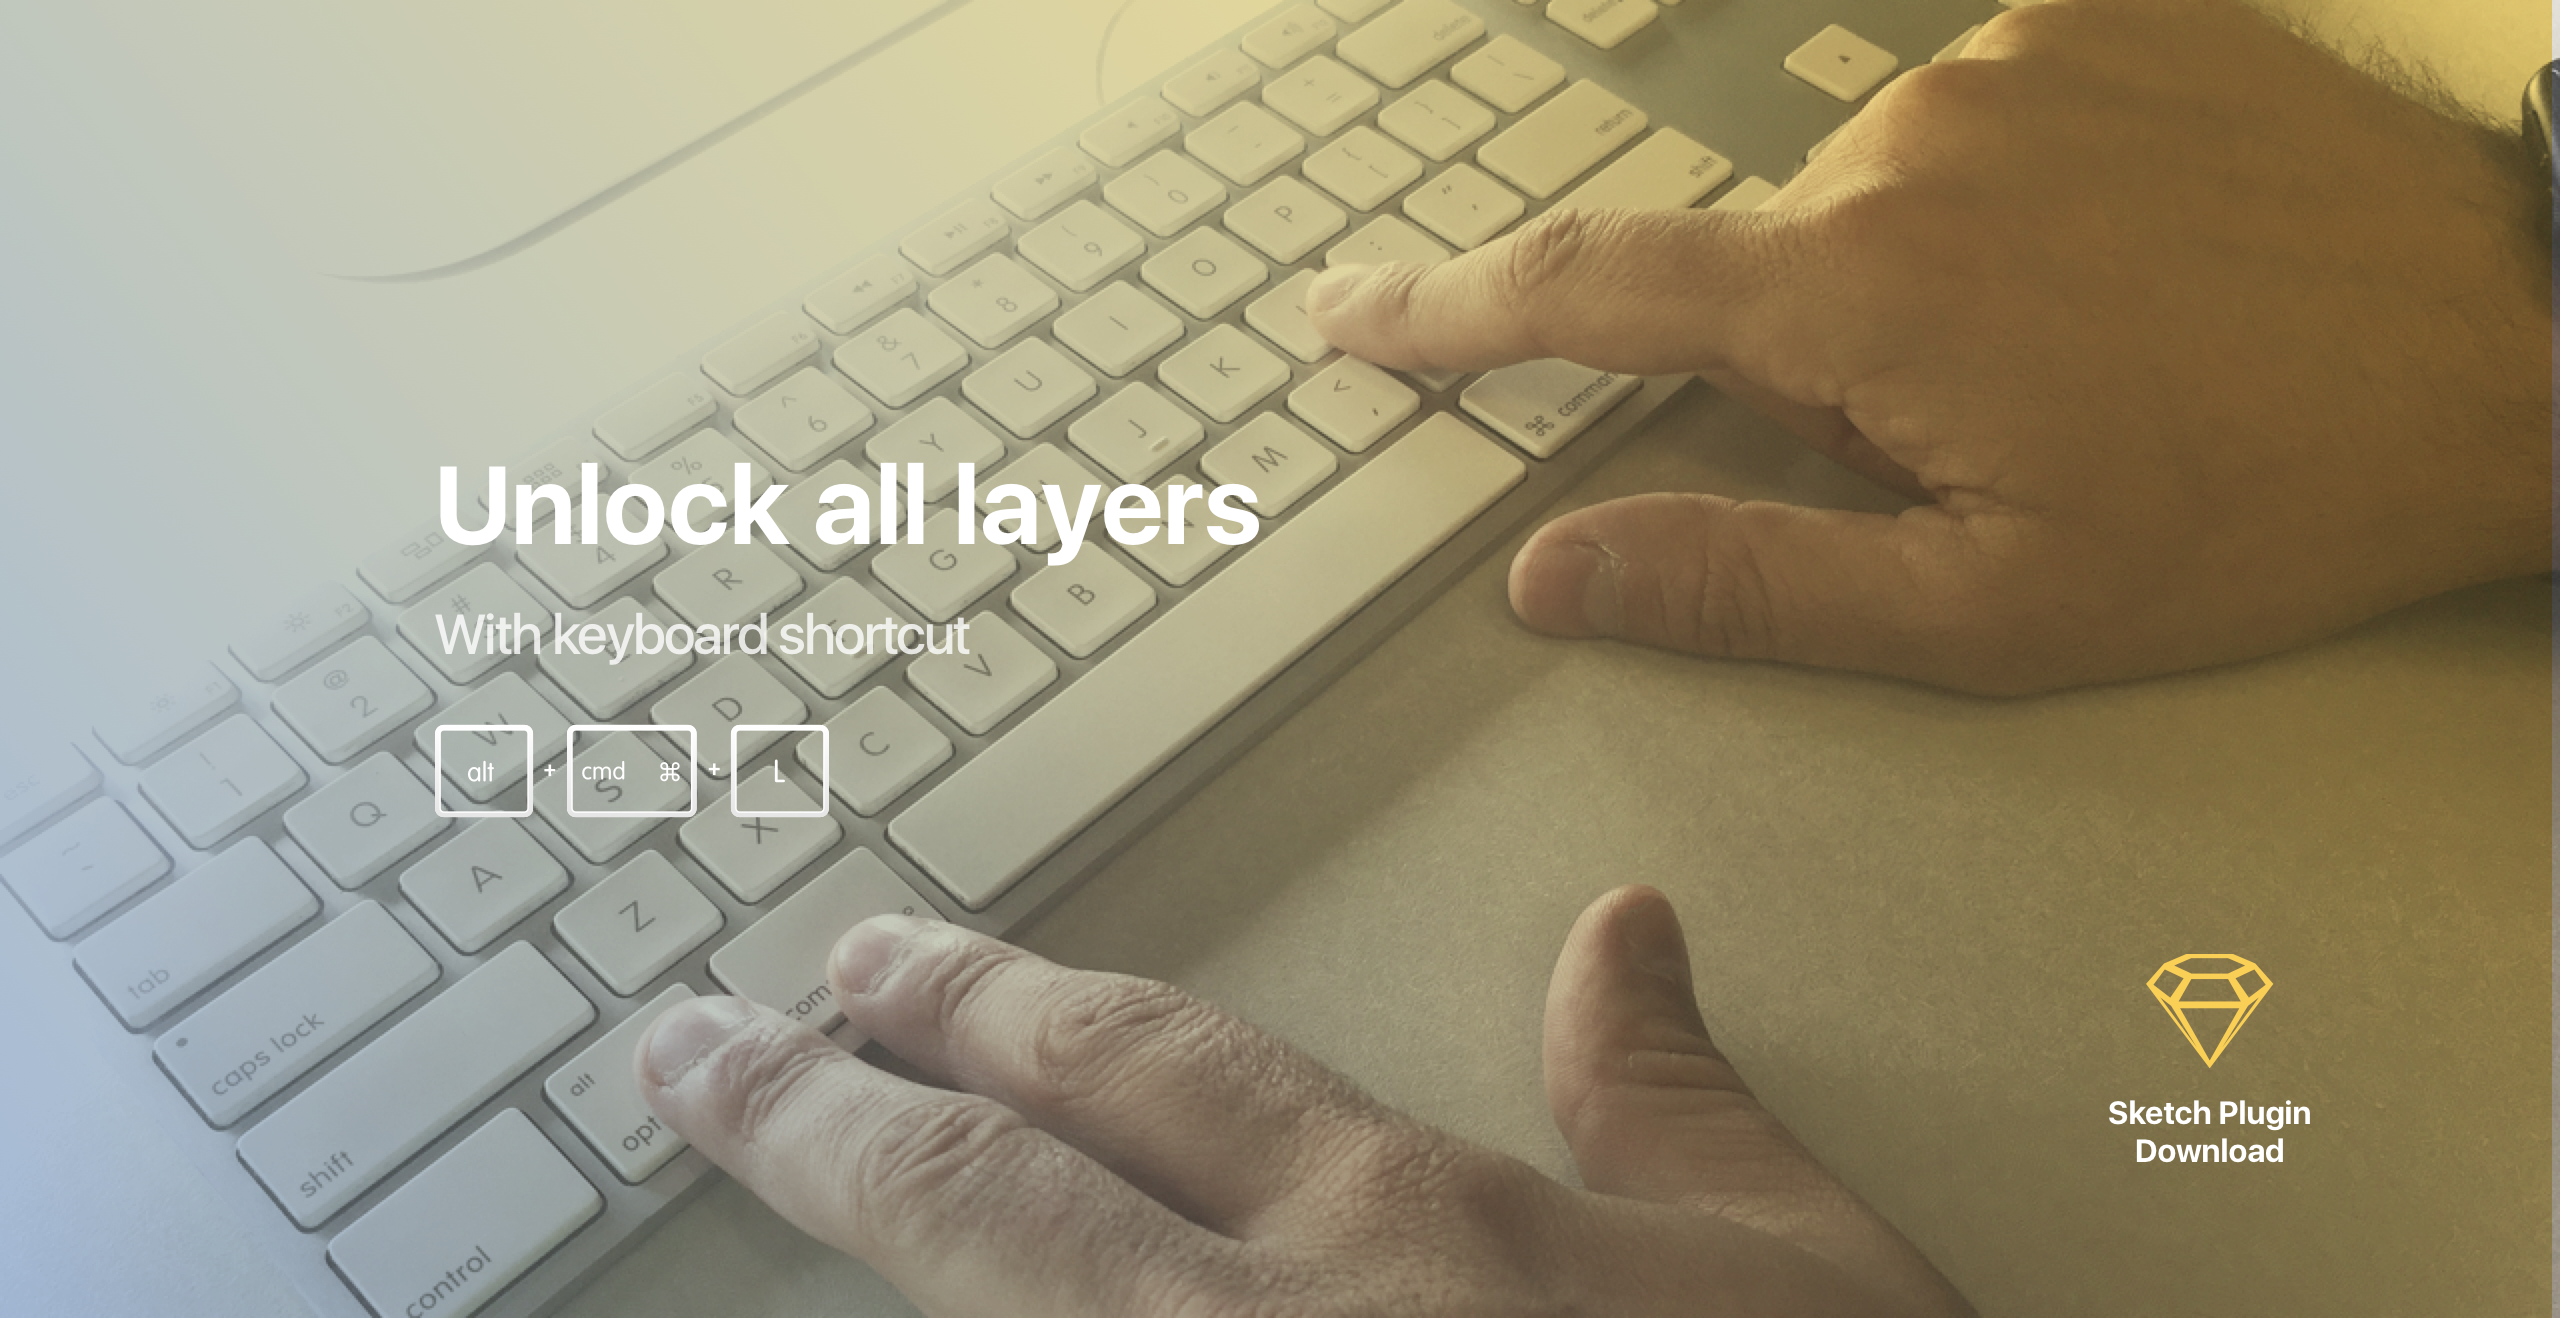 Sketch plugin: Unlock all layers - Perficient Digital Labs